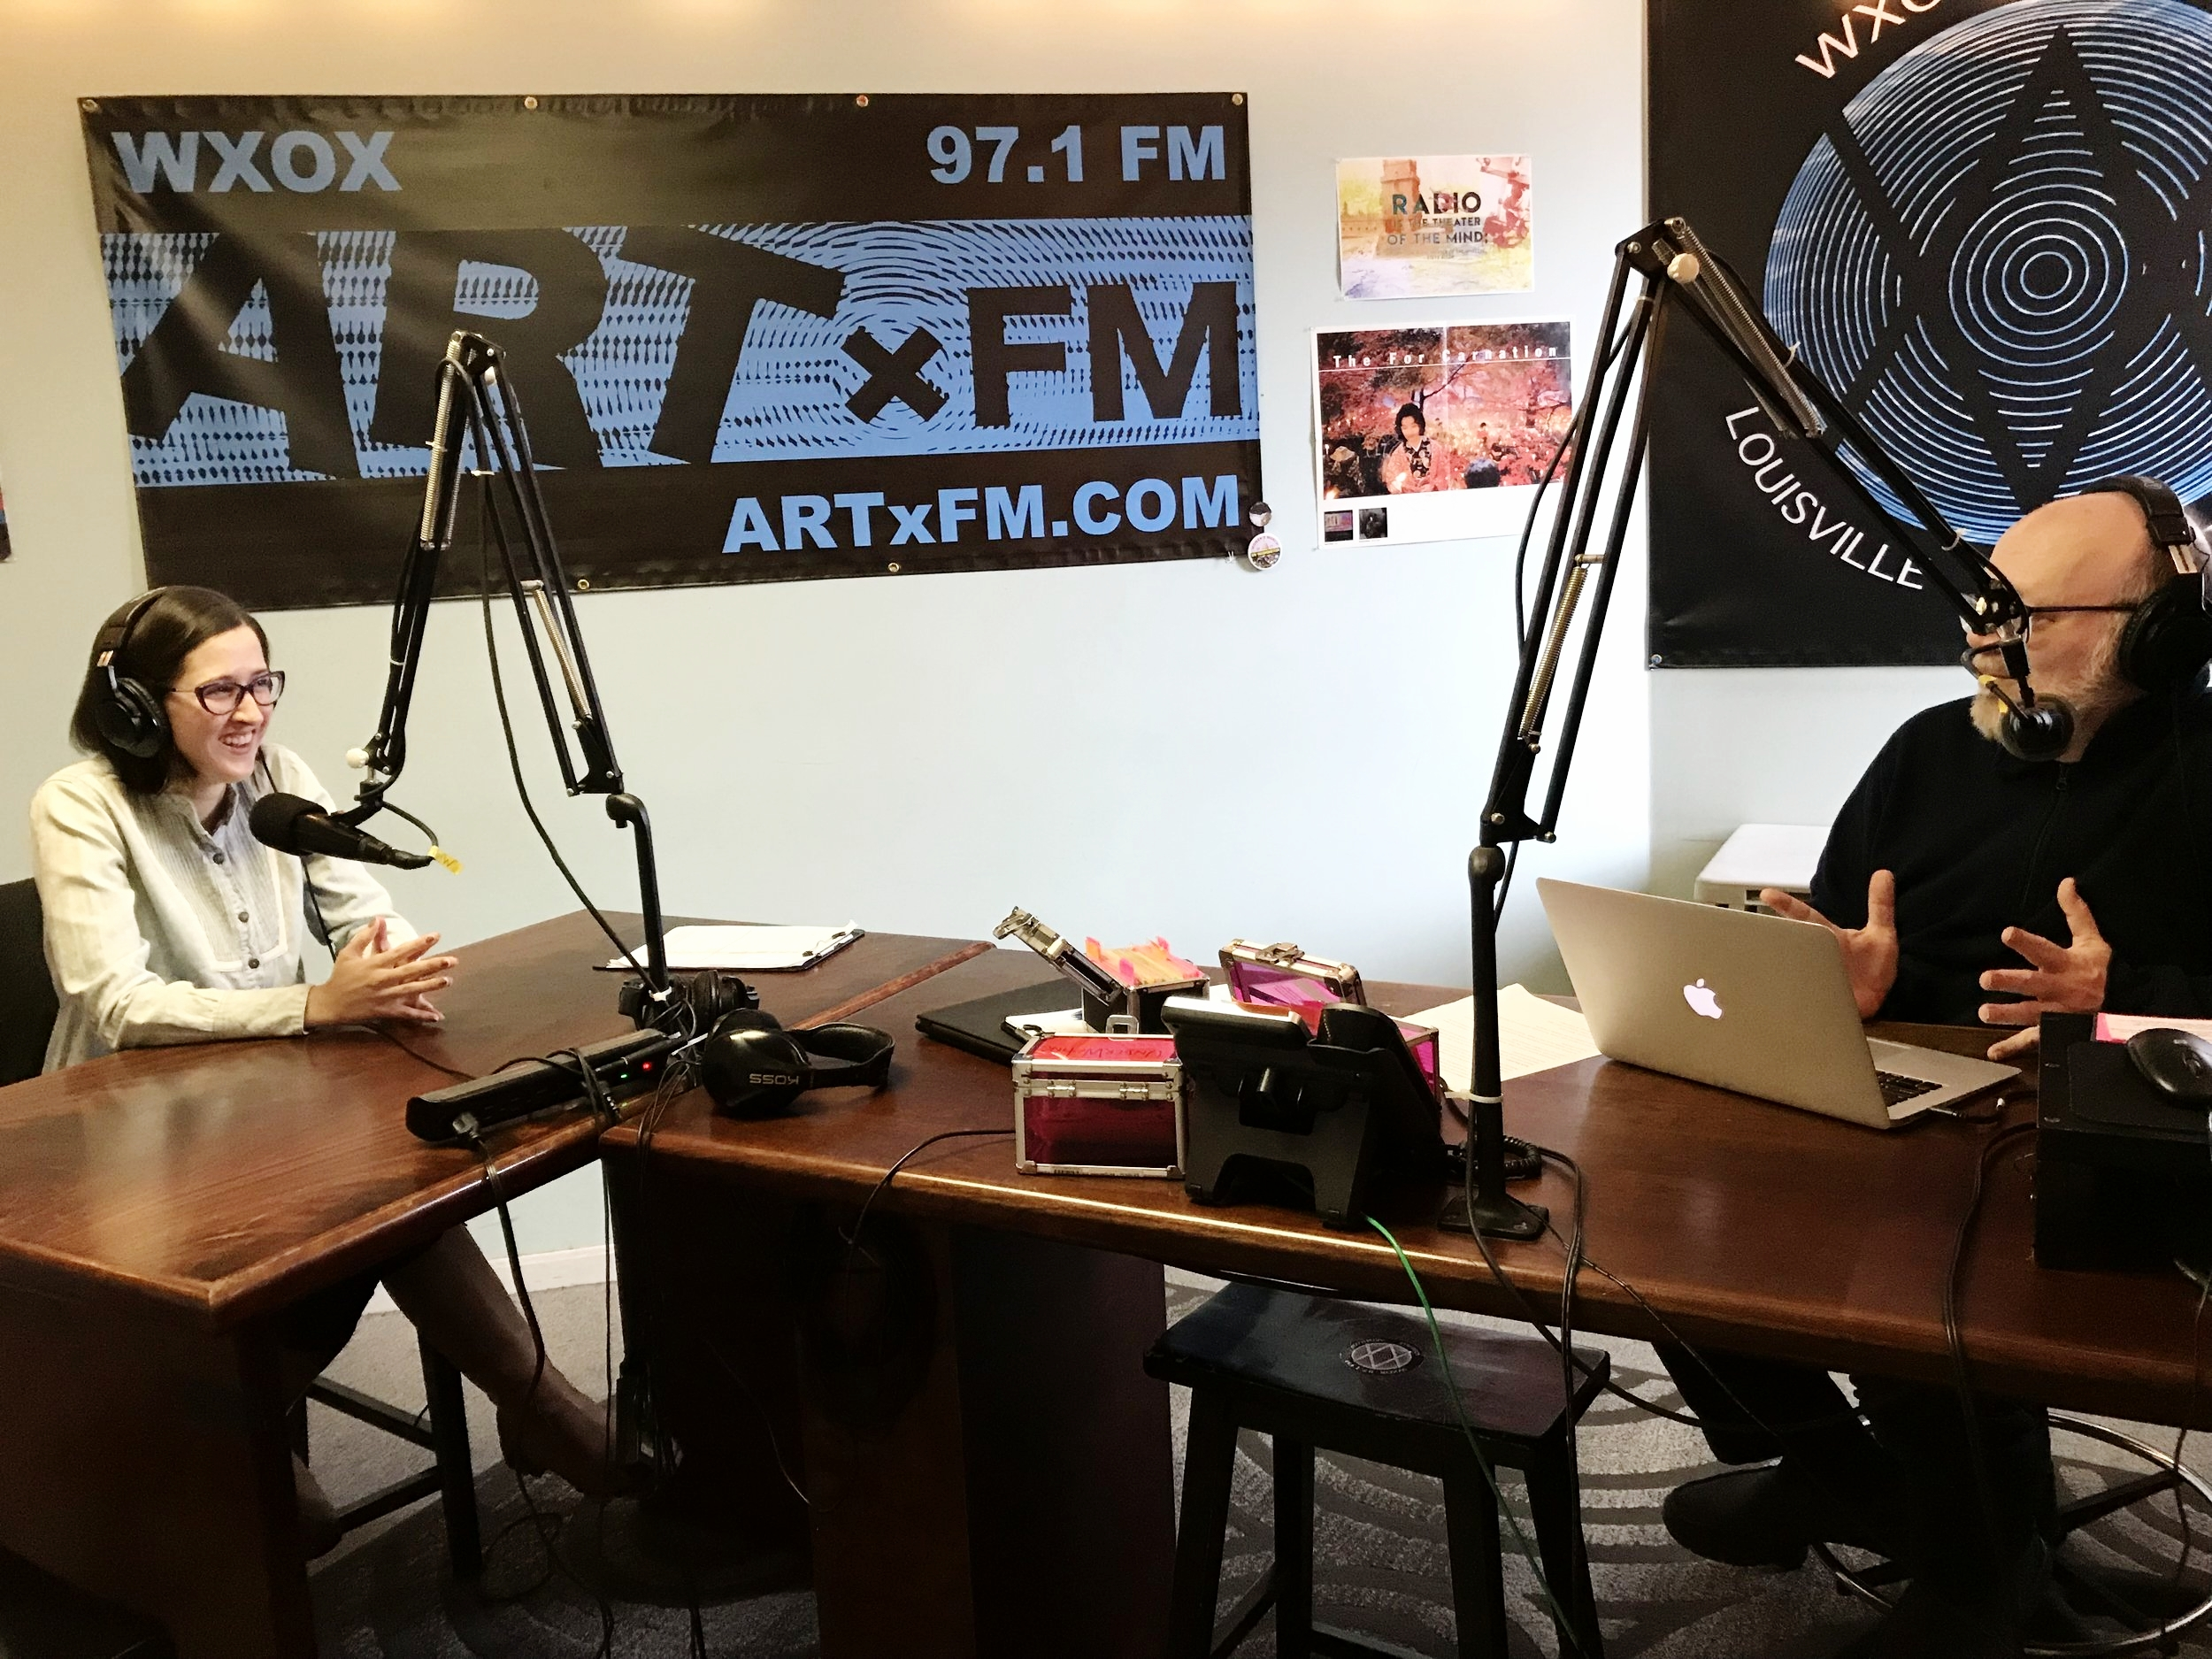 Kayla Bischoff joined LVA's Keith Waits in the WXOX studios to talk about her duo exhibition with Bob Lockart at PYRO Gallery. Tune in Thursdays from 10-11 a.m. on Art FM, 97.1, artxfm.com.